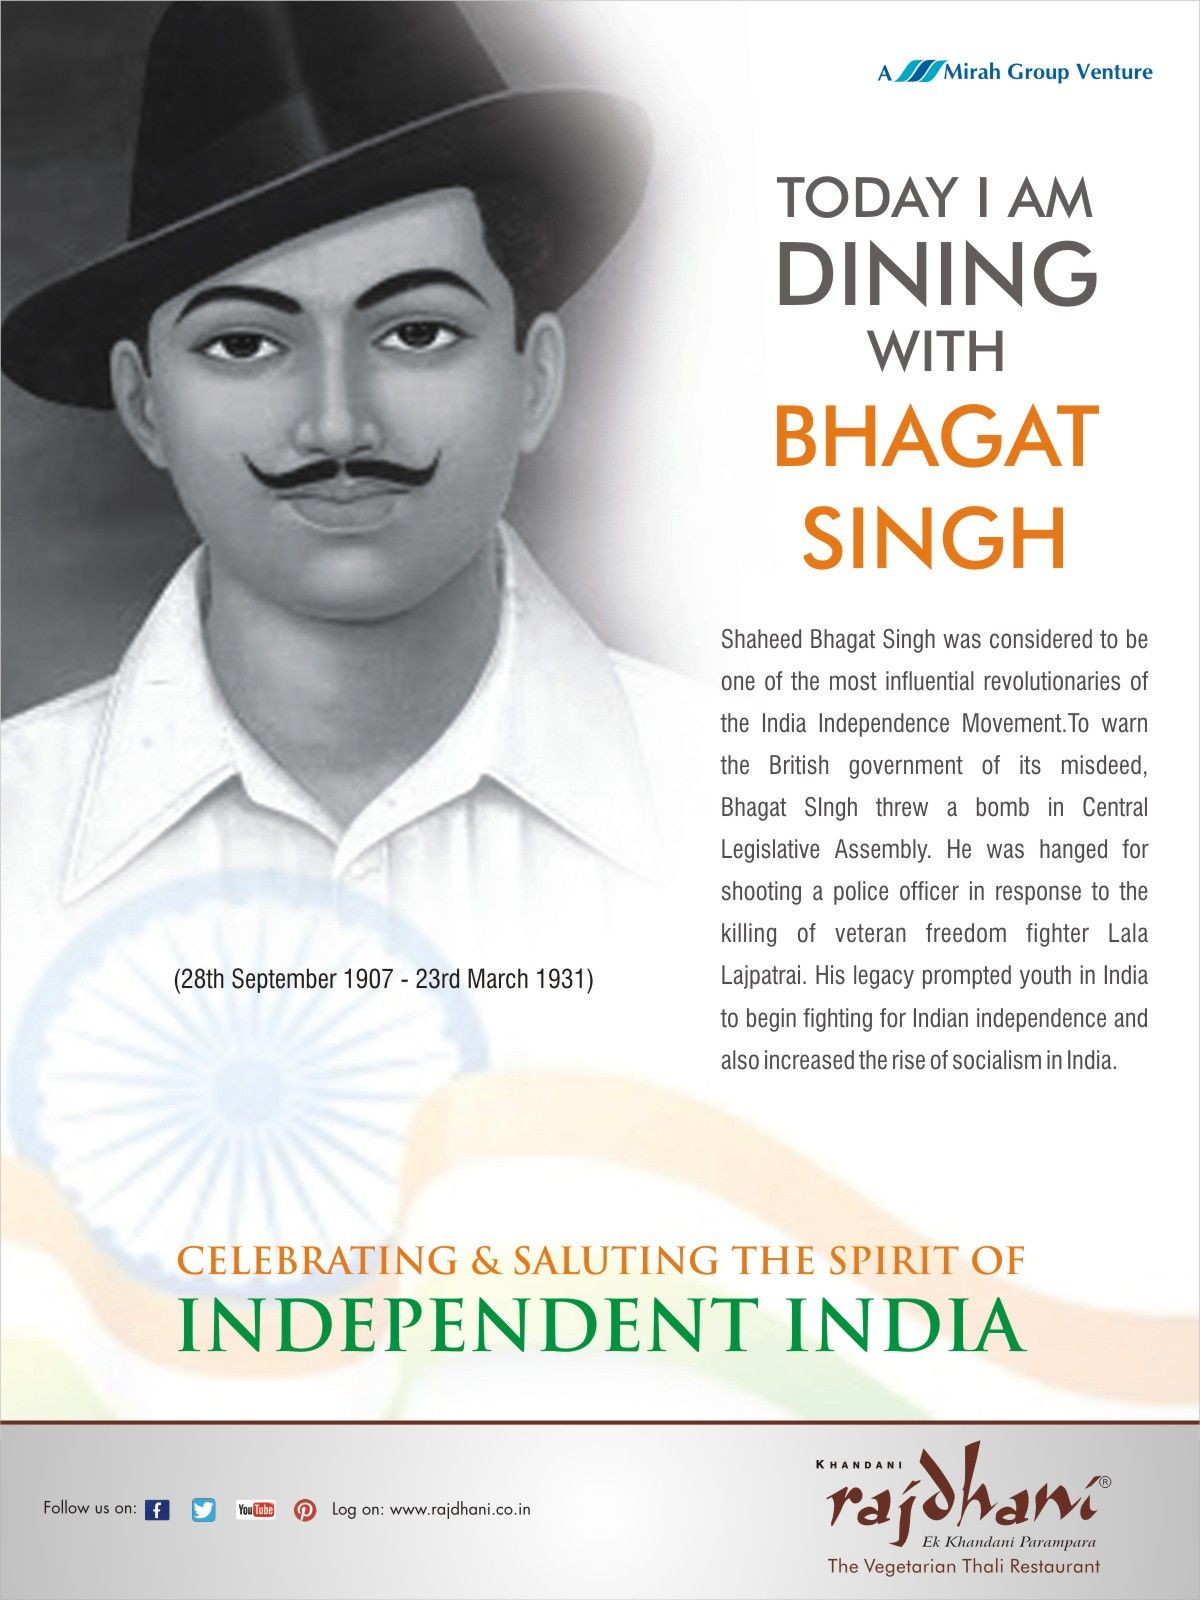 Shaheed Bhagat Singh was considered to be one of the most